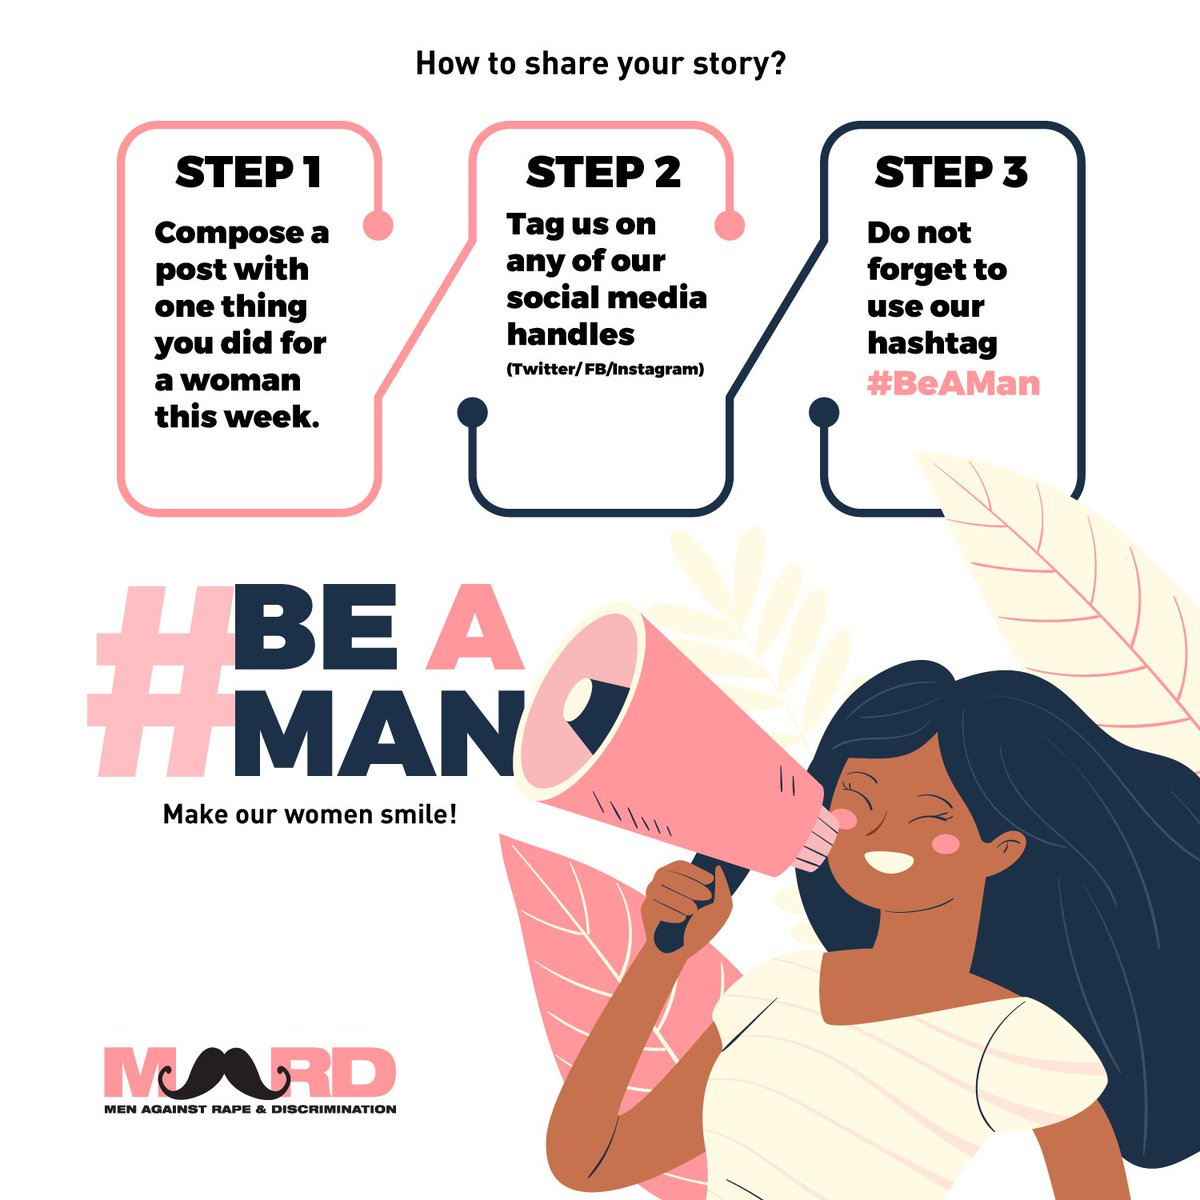 To all the men out there, #BeAMan and share your story about one thing you have done for a woman this week that put a smile on her face. Eg 1: I helped my mother clean the house today. @MardOfficial #BeAMan @PopFoundIndia @MKBKSH_ @FarOutAkhtar #GenerationEquality #IWD